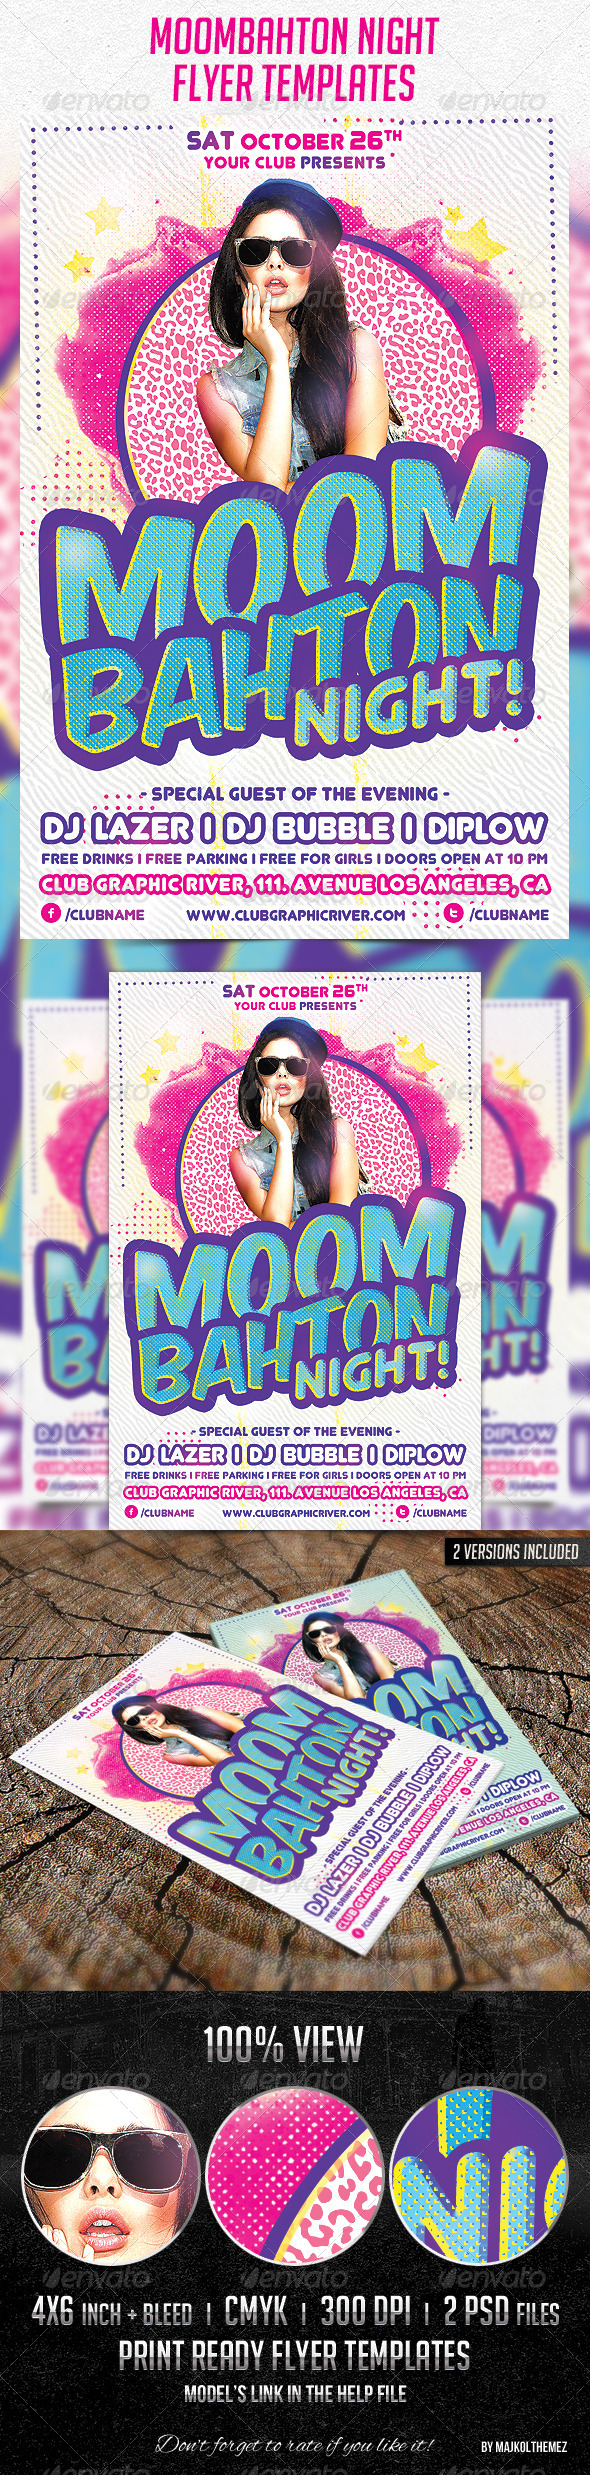 GraphicRiver Moombahton Night Flyer Template 5893270